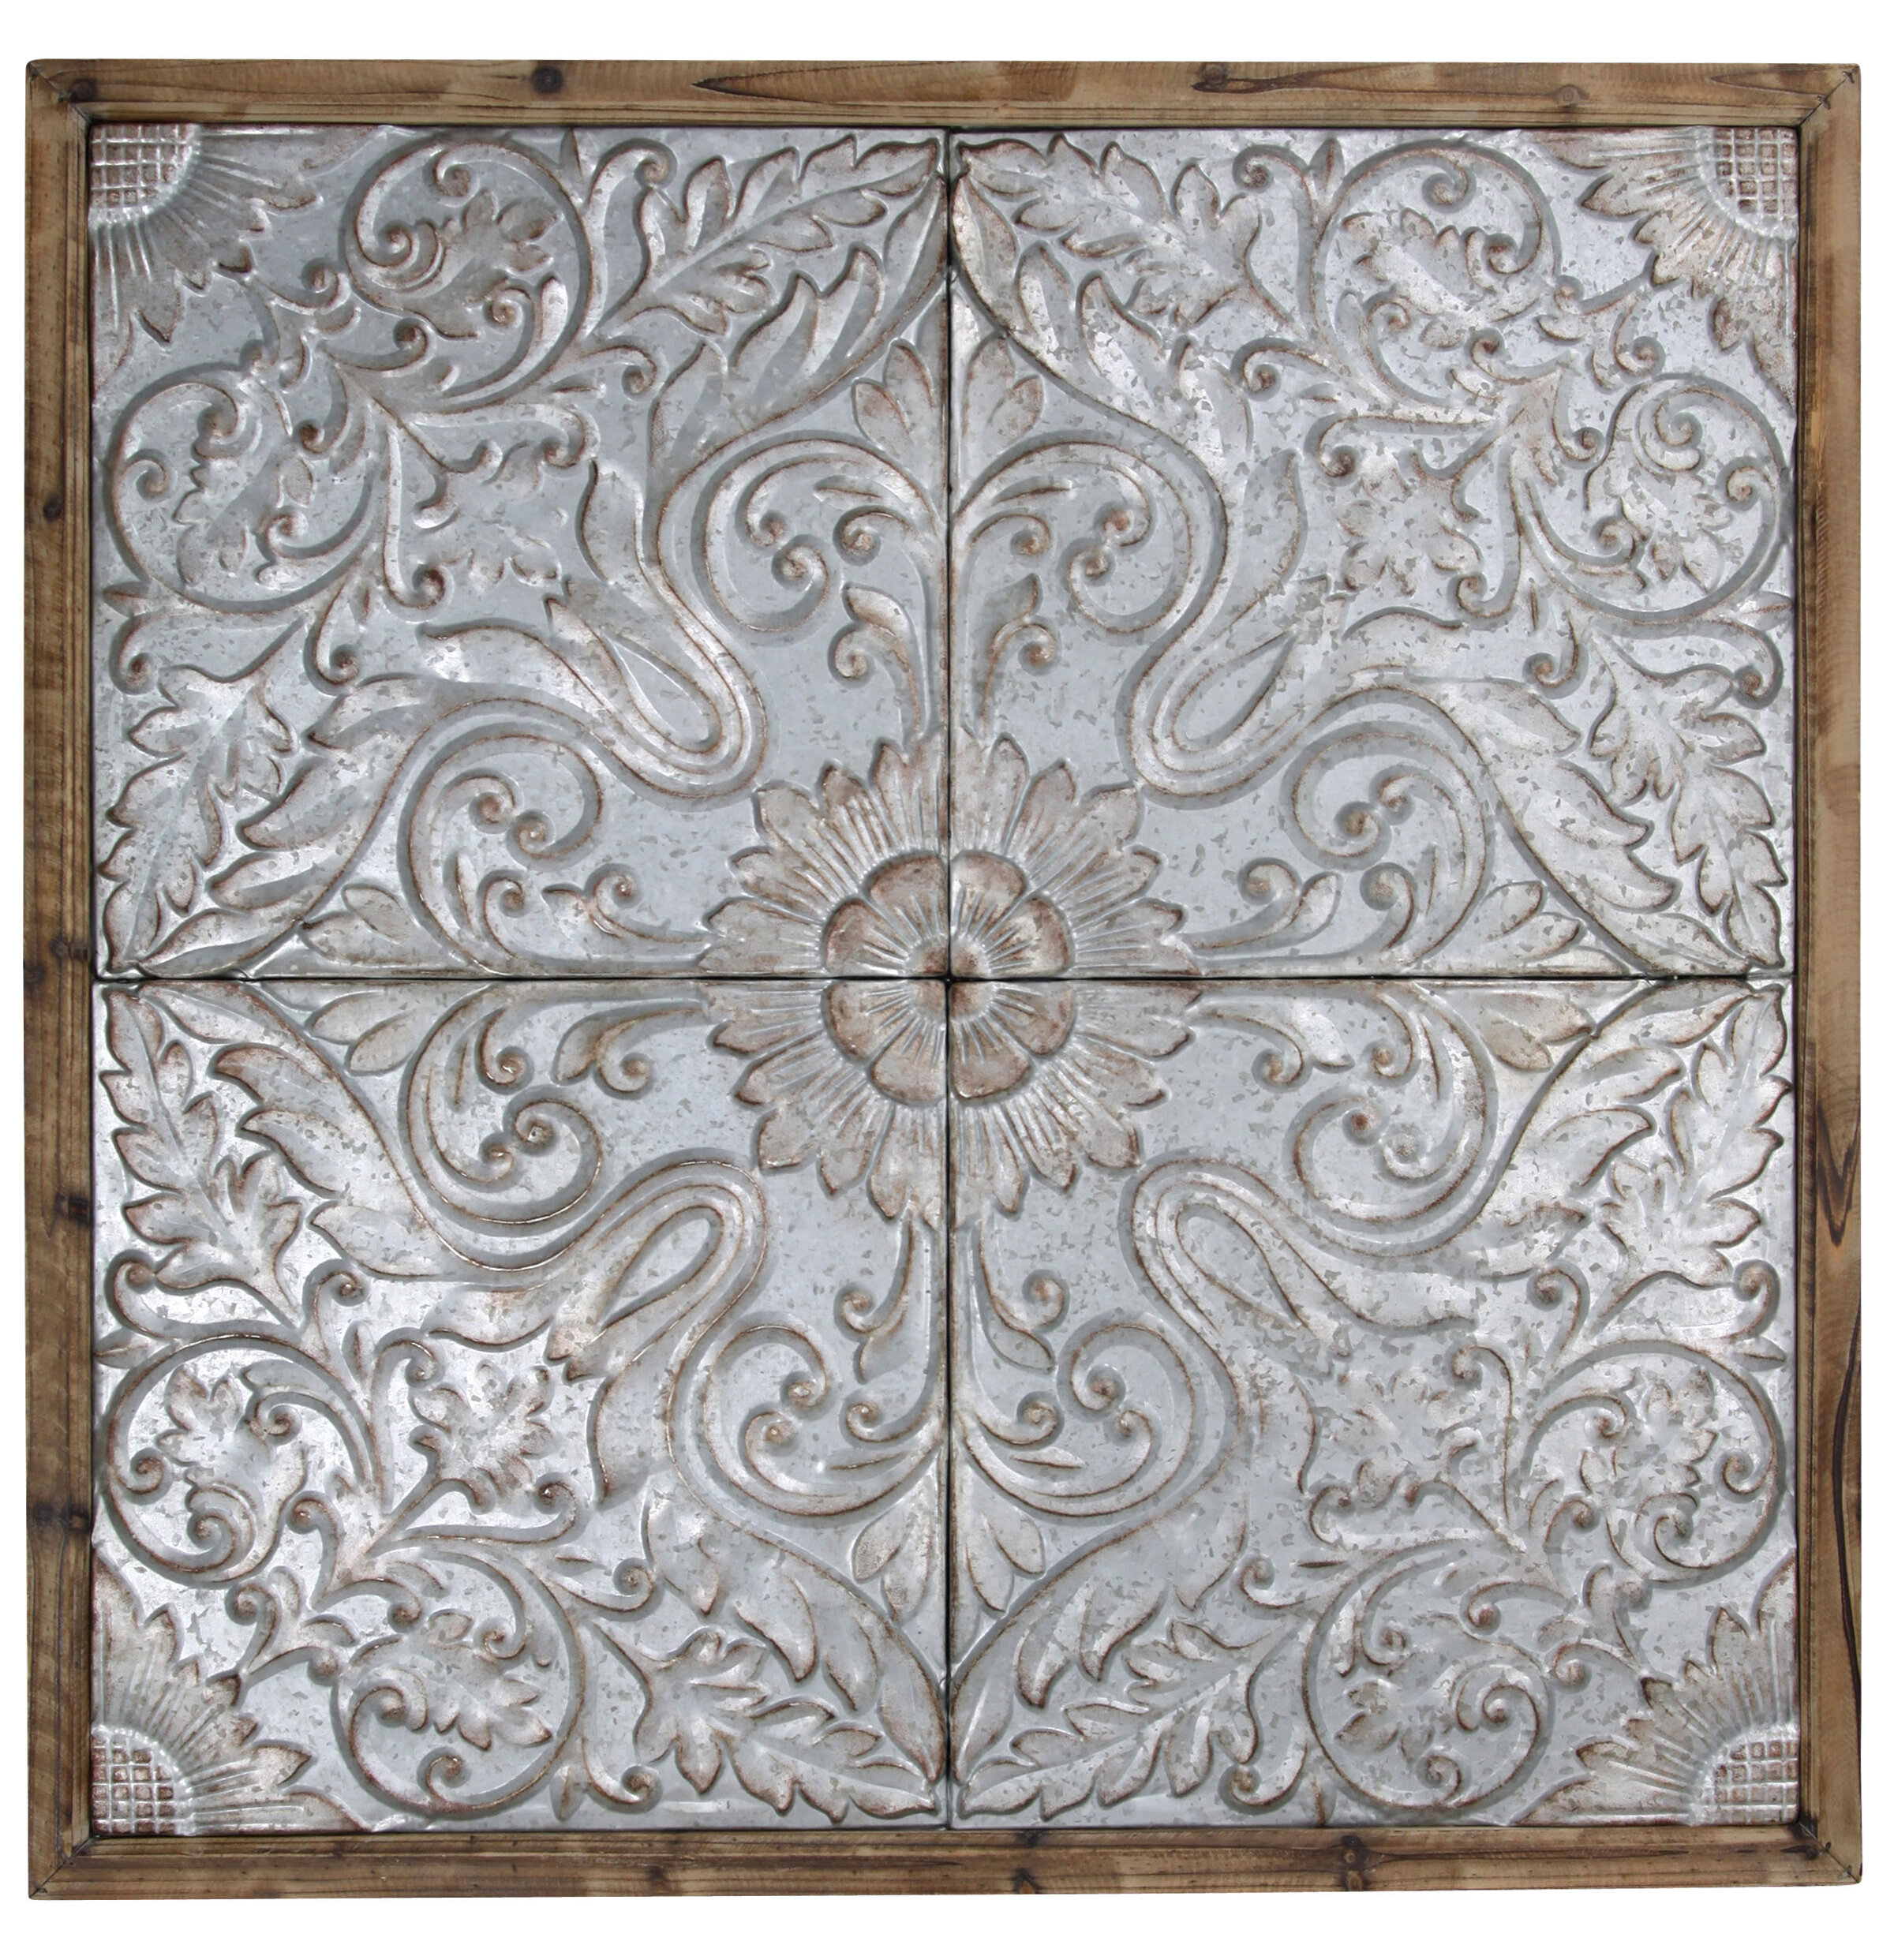 Gracie Oaks Patterned Punched Tin Ceiling Tiles Framed Graphic Art Print In Gray Reviews Wayfair